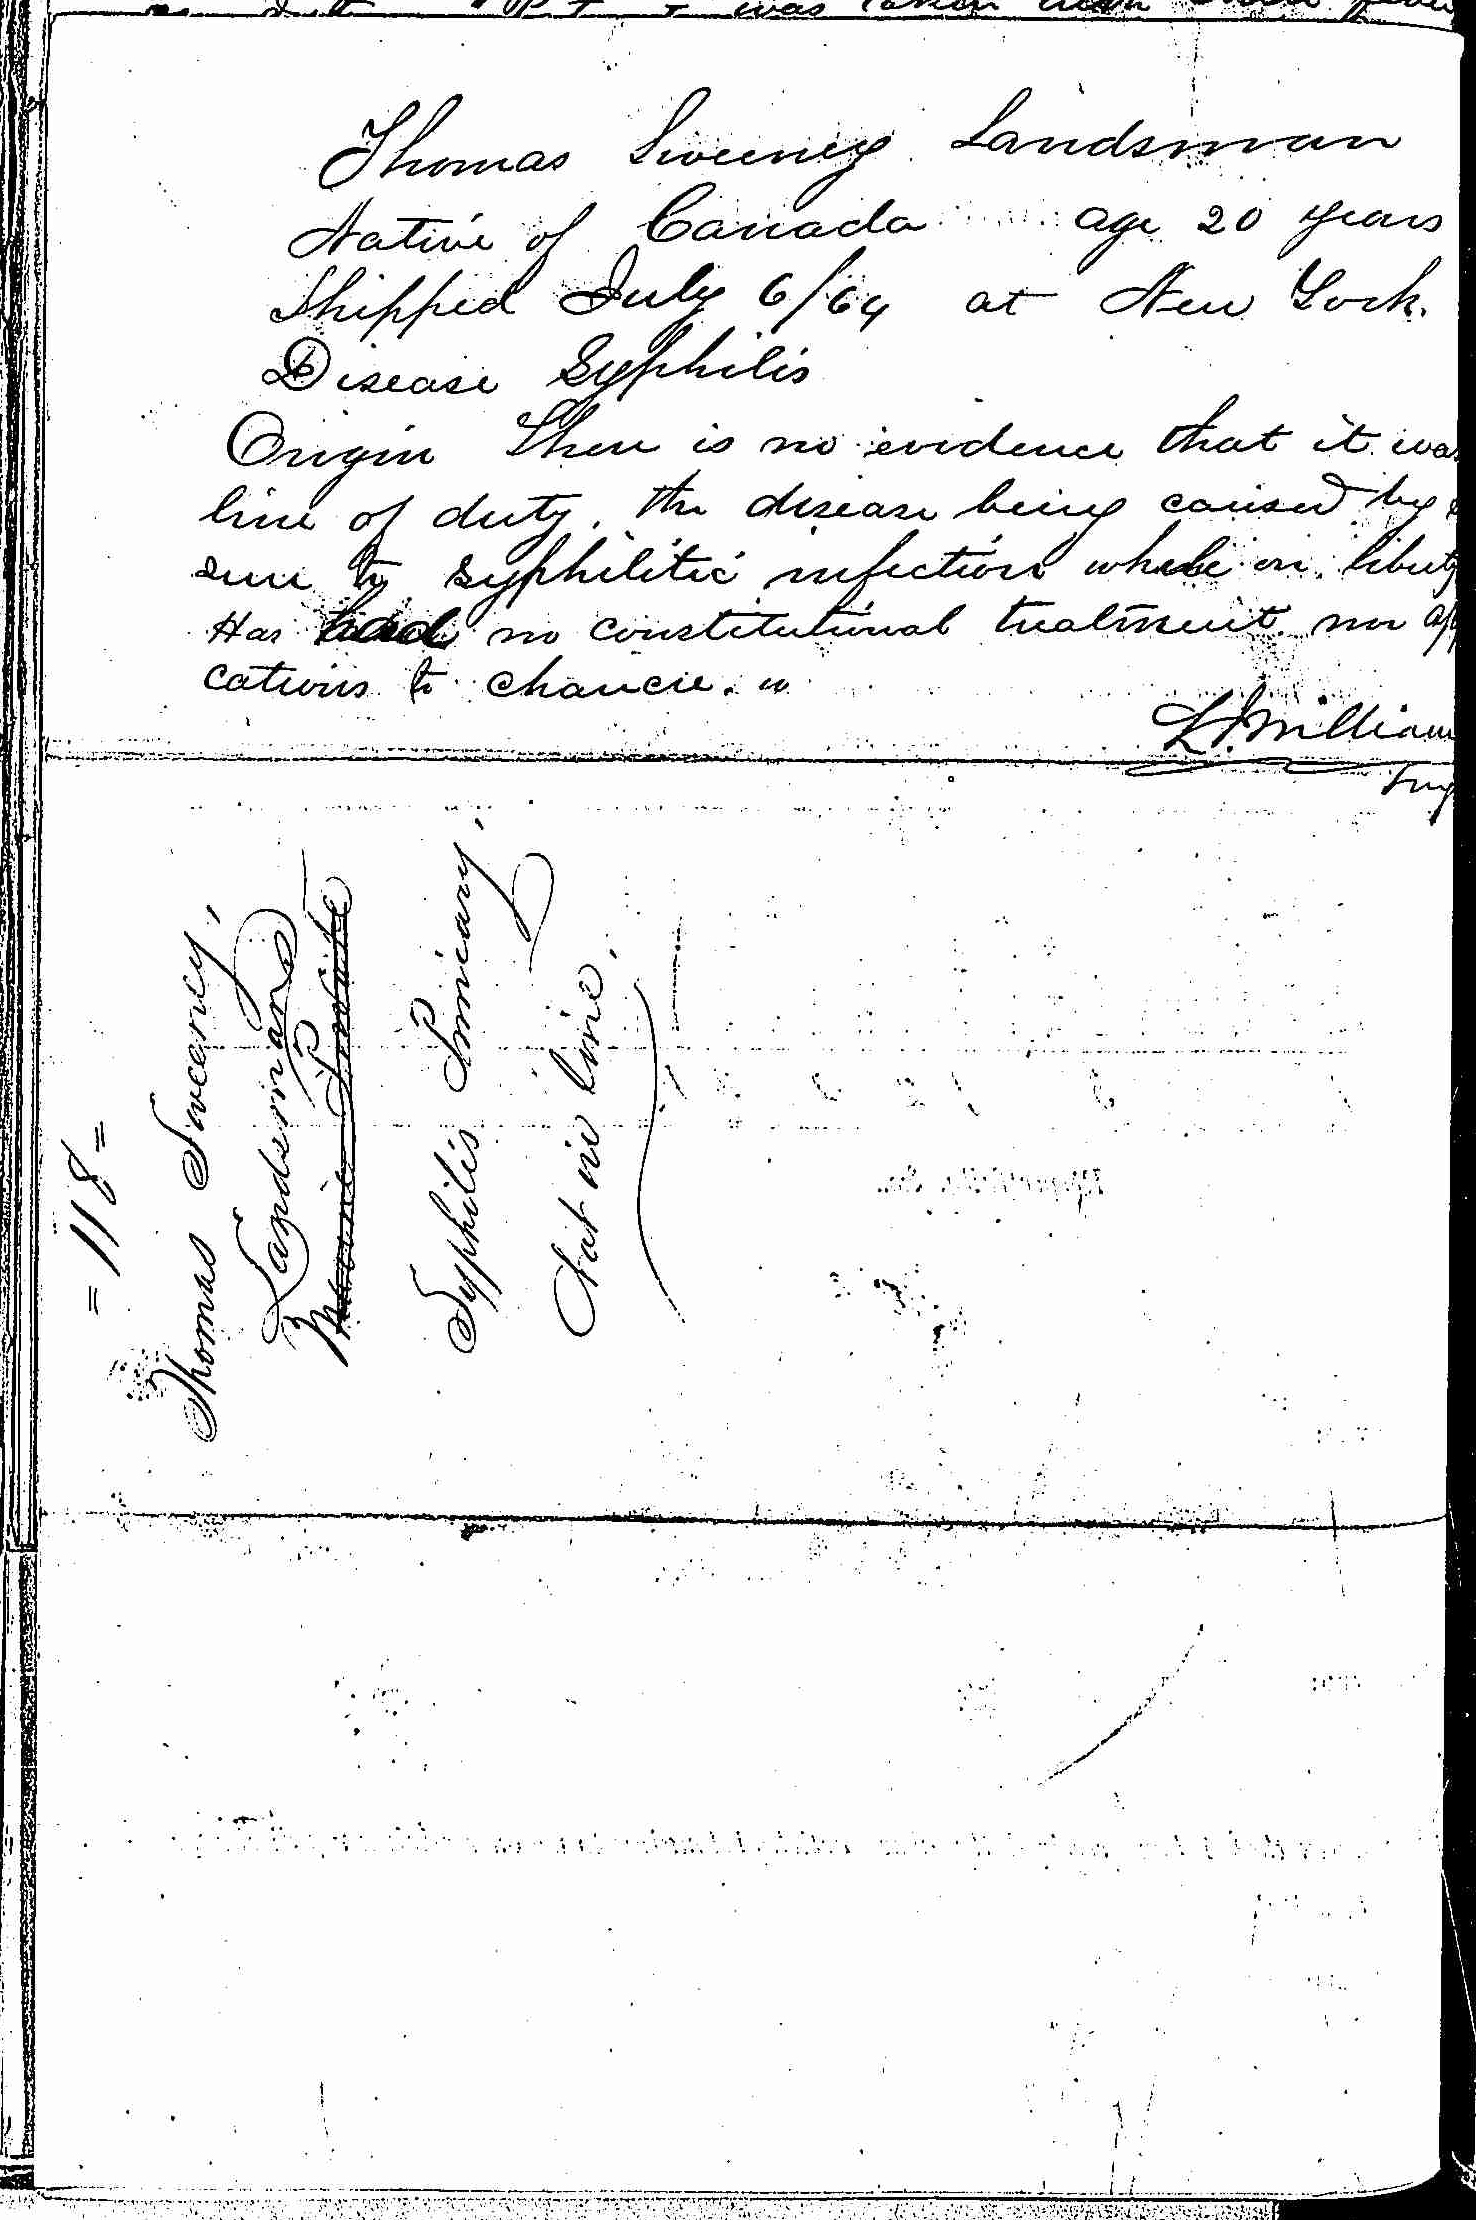 Entry for Thomas Sweeney (page 2 of 2) in the log Hospital Tickets and Case Papers - Naval Hospital - Washington, D.C. - 1866-68